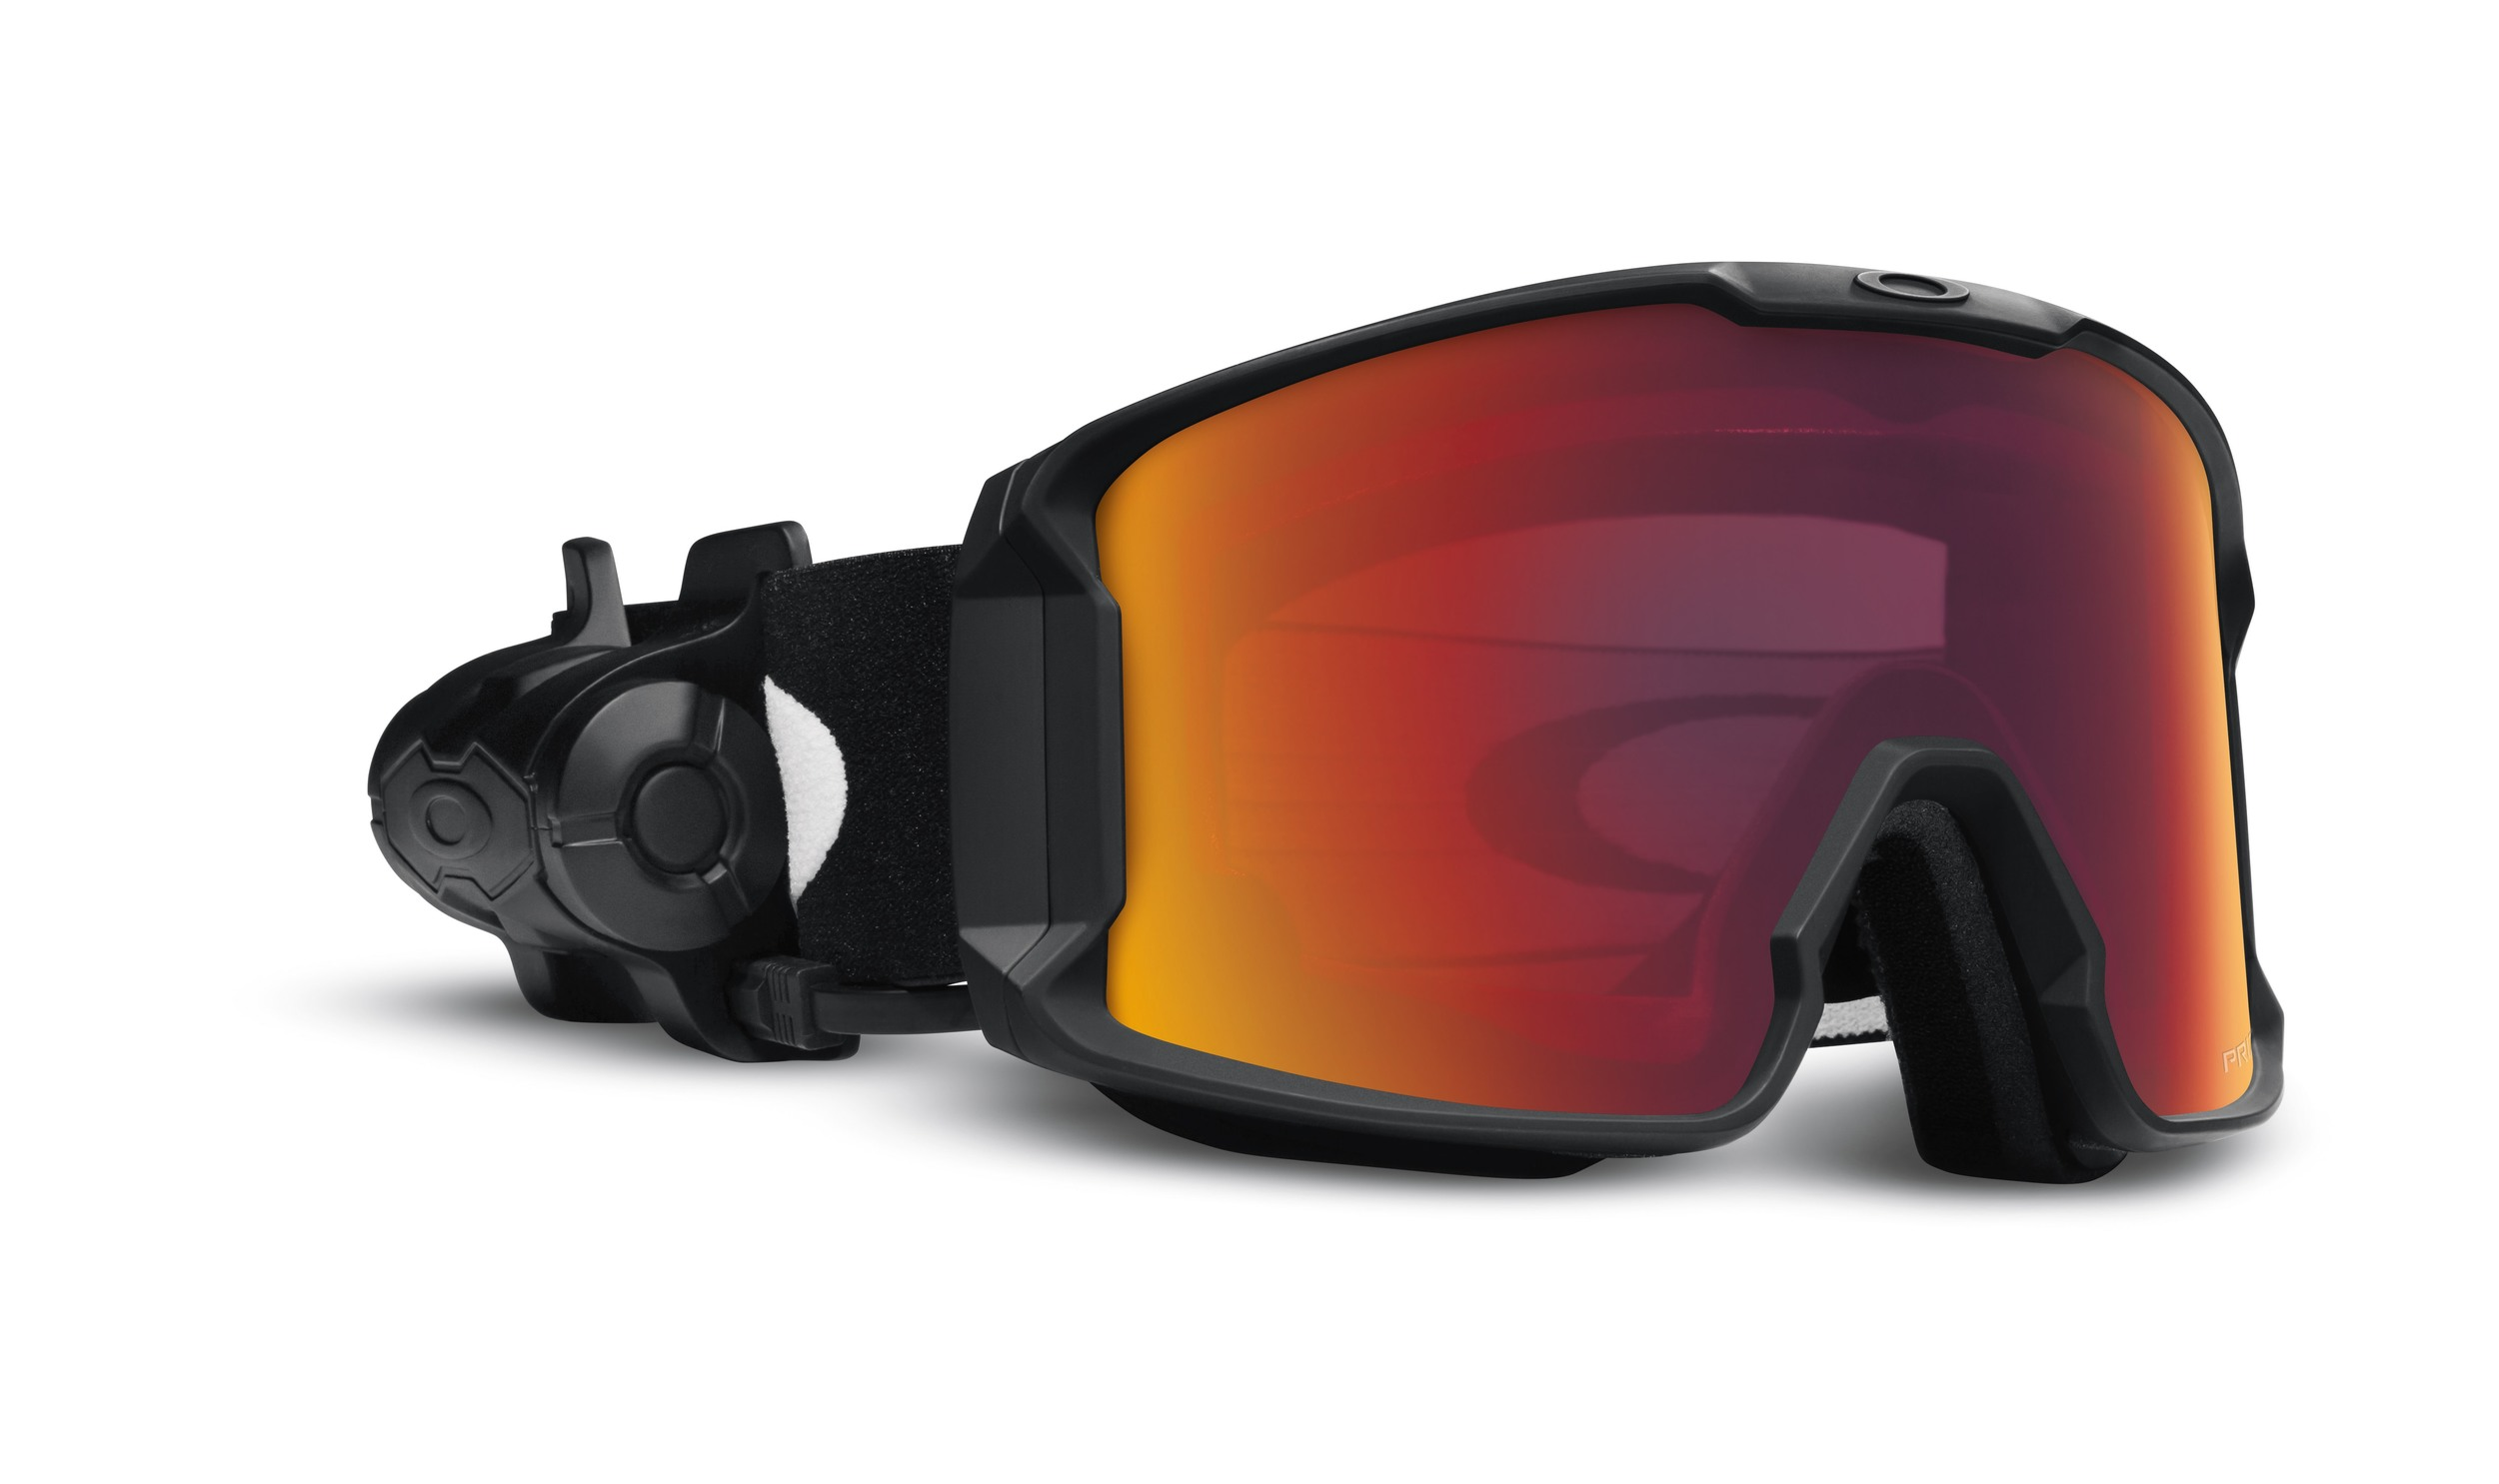 OAKLEY LINE MINER GOGGLE WITH PRISM INFERNO, $TBD